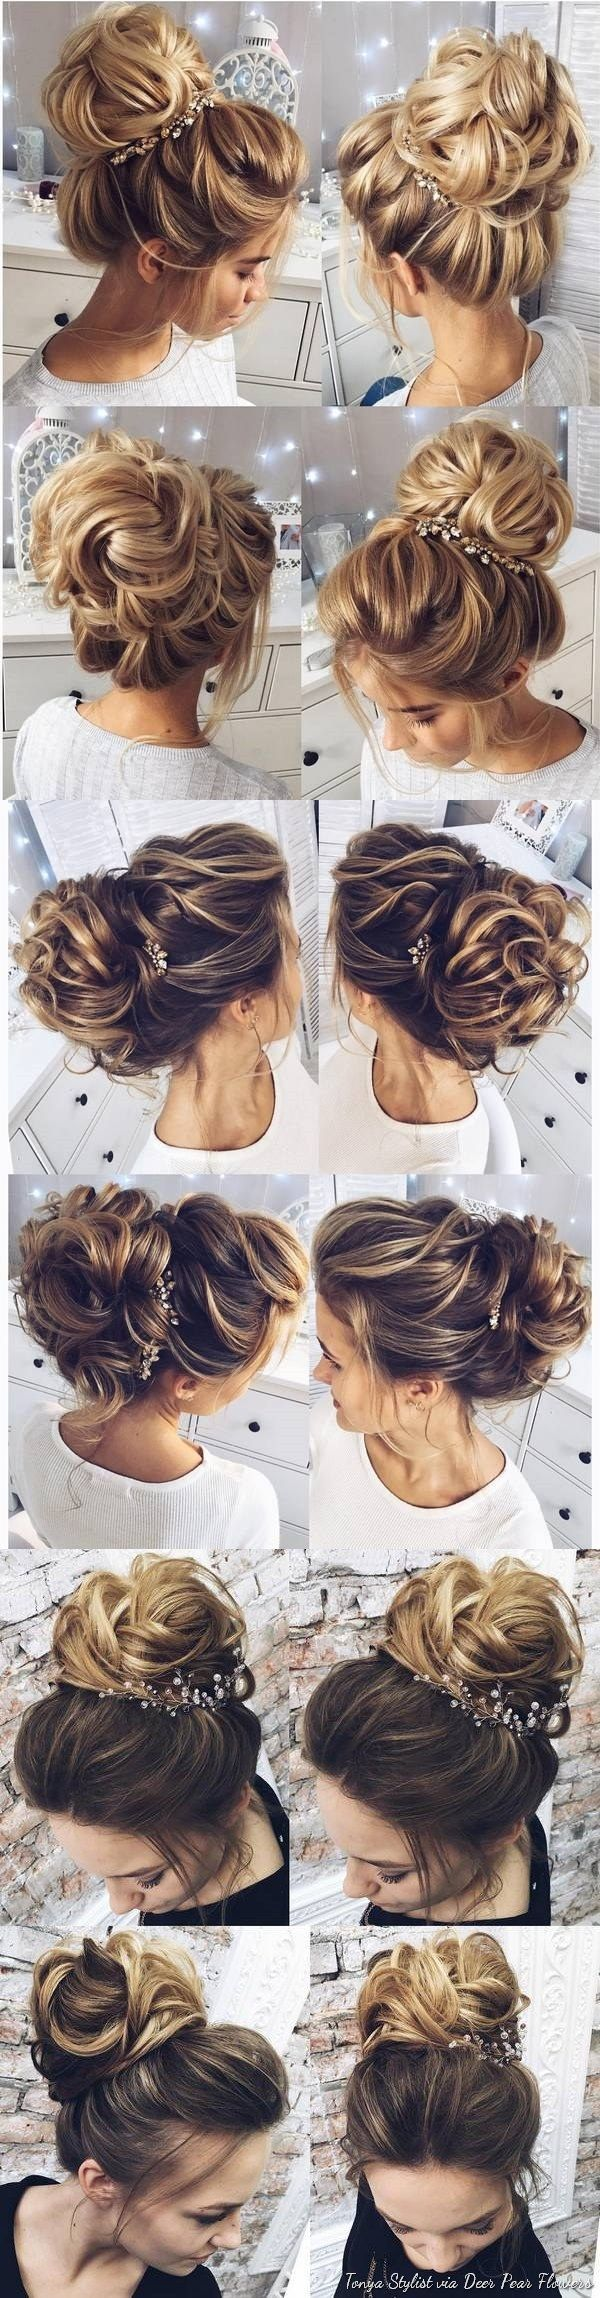 2017 06 homecoming hairstyles long hair - 60 Wedding Hairstyles For Long Hair From Tonyastylist